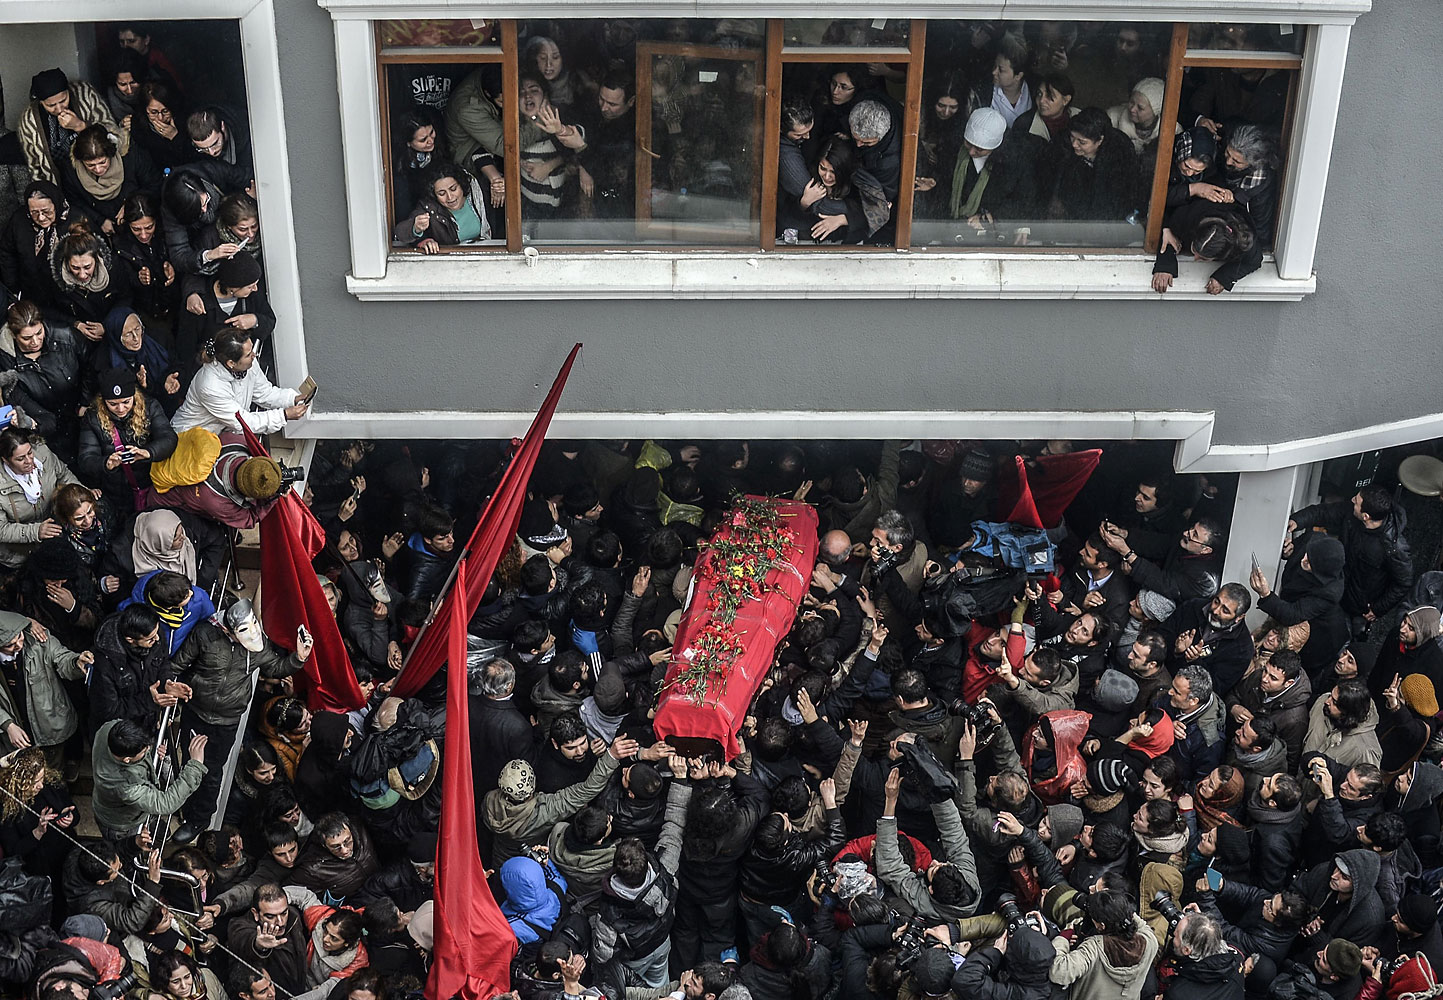 The coffin of Berkin Elvan is carried  on March 11, 2014, in Istanbul. Berkin Elvan, who has been in a coma since June 2013 after being struck in the head by a gas canister during a police crackdown on protesters, died earlier on the day.